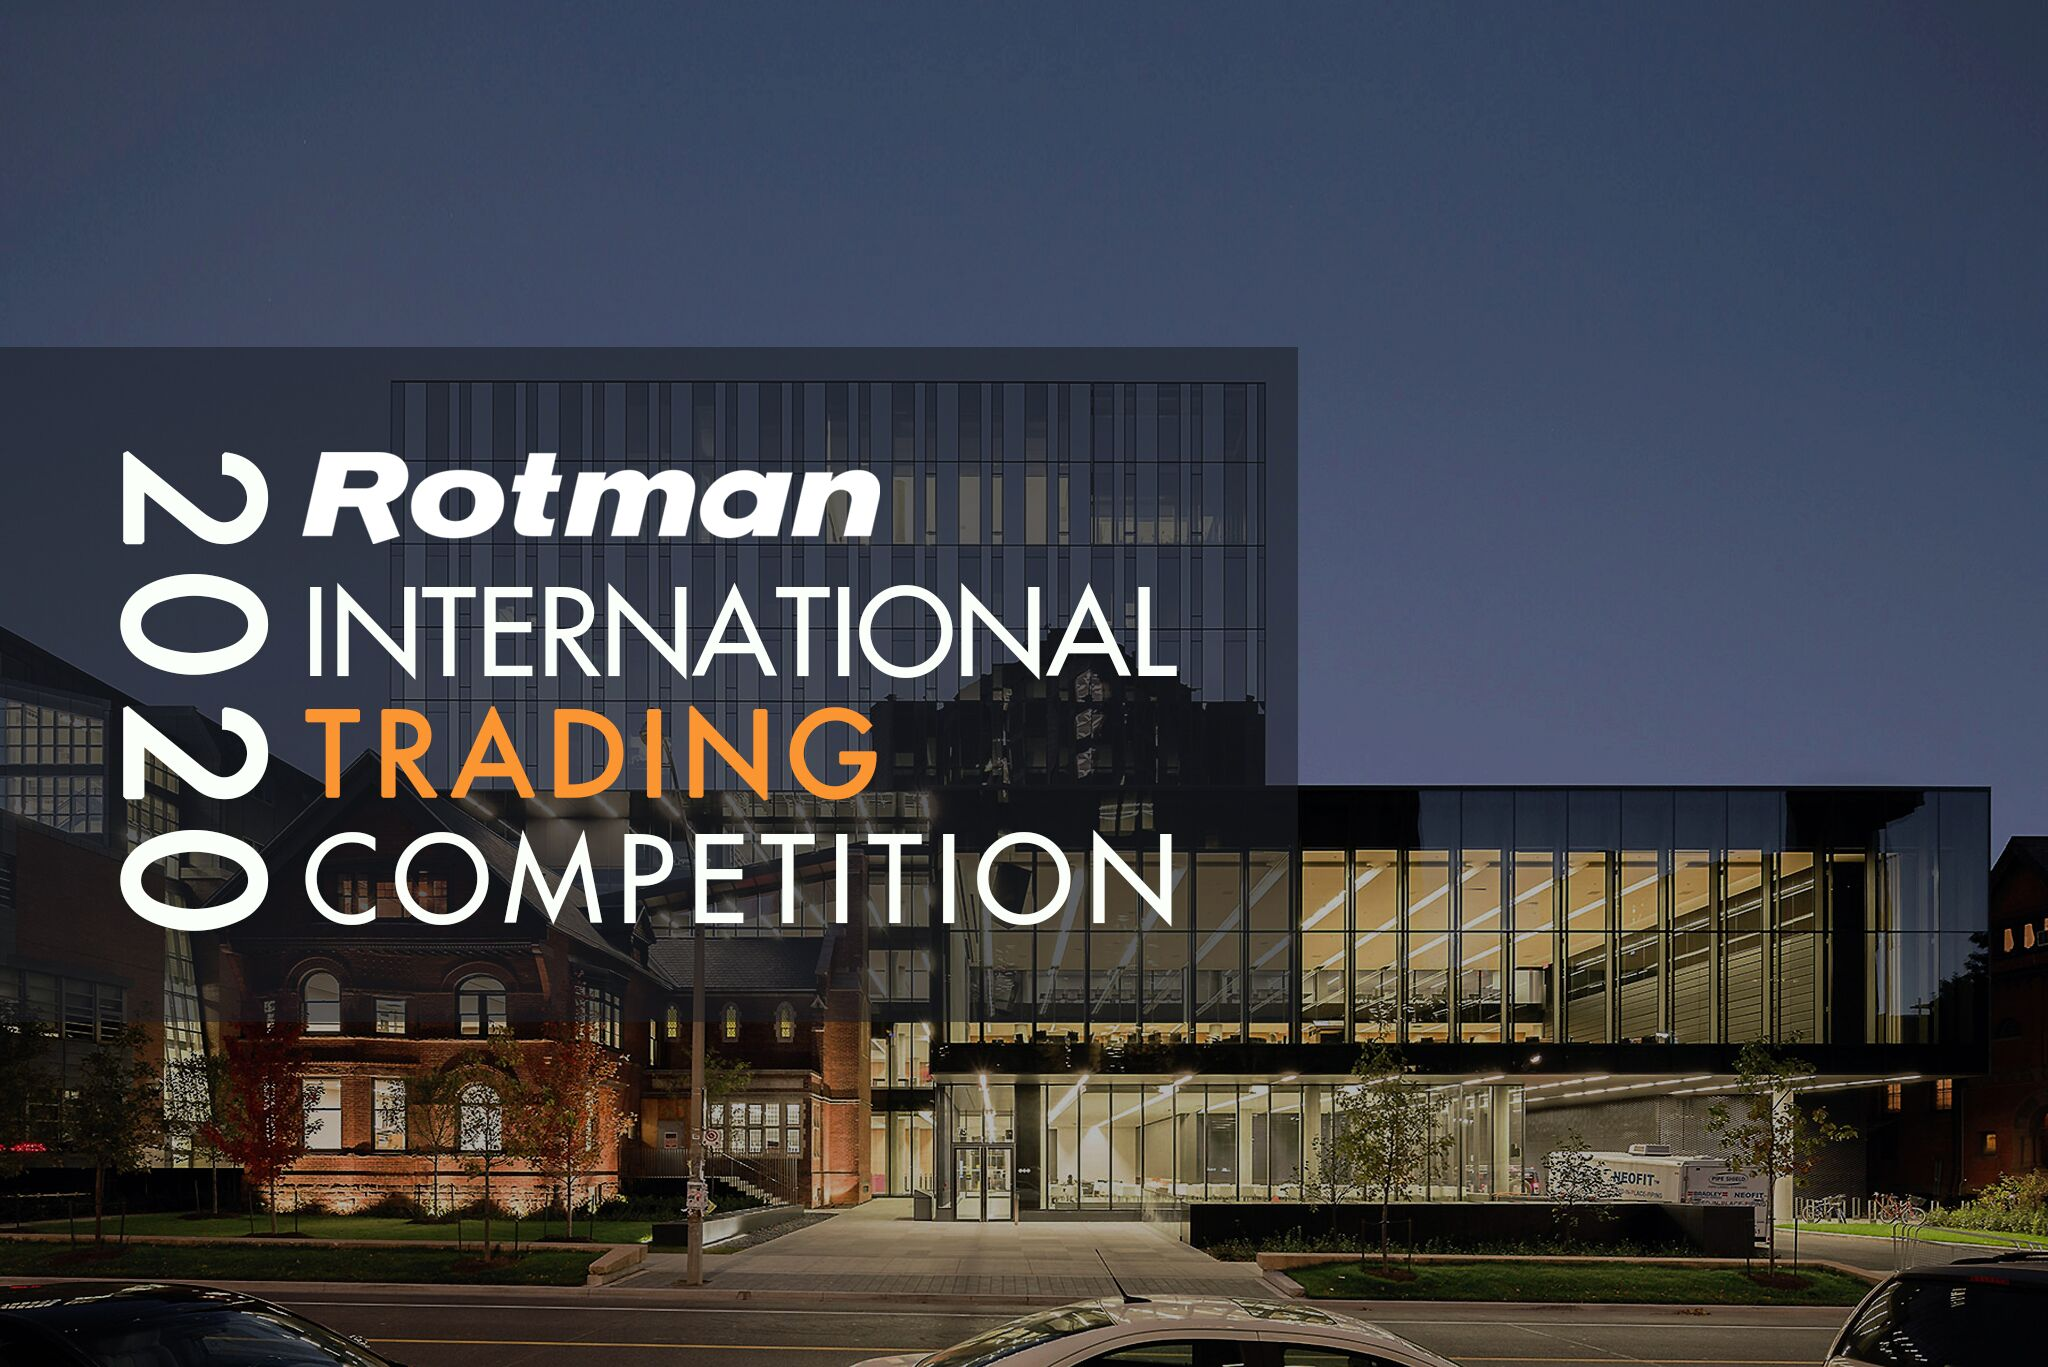 Rotman Interactive Trading Competition